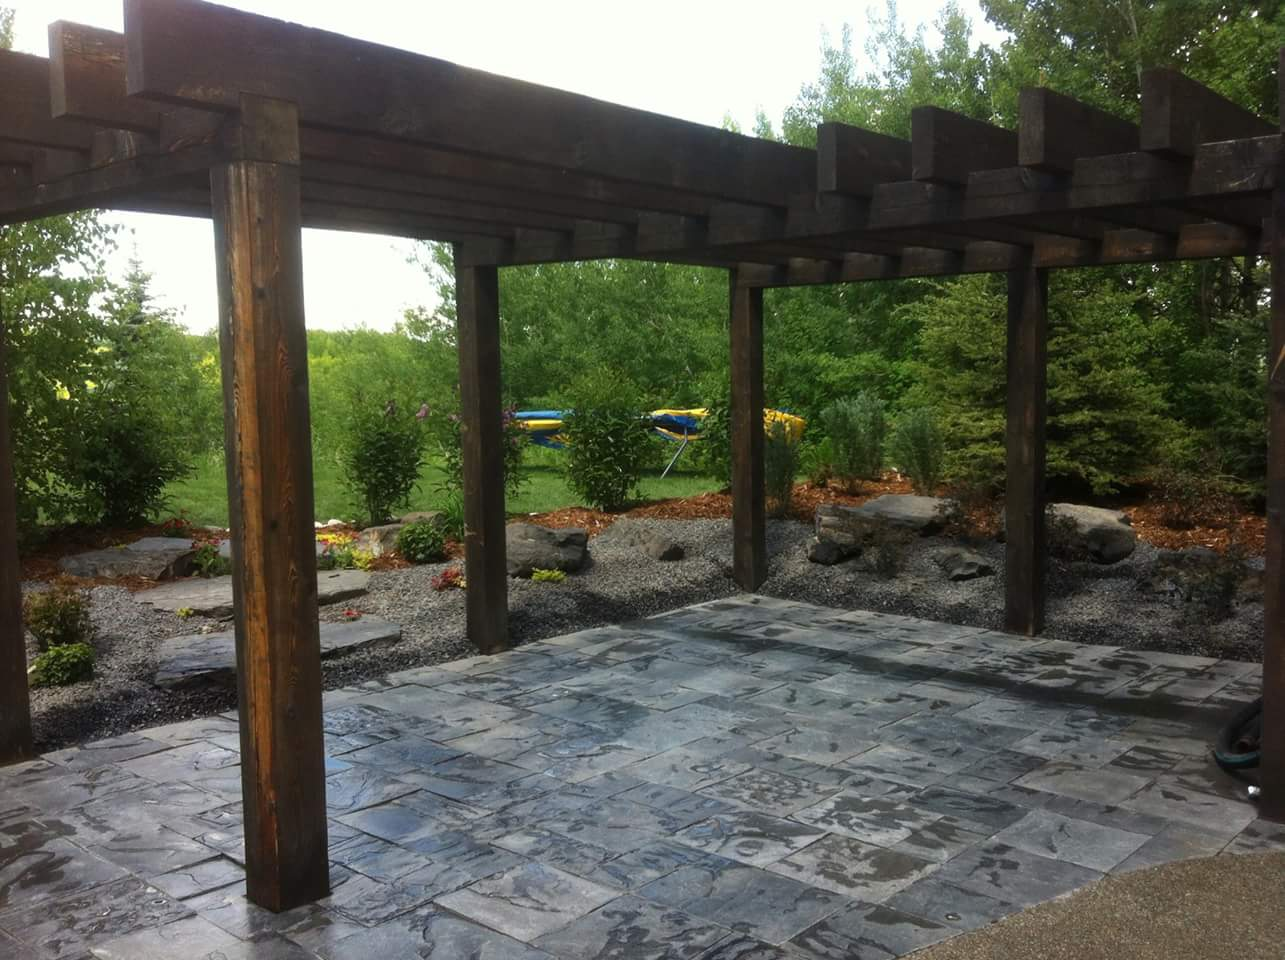 CityScape Landscaping Calgary - backyard patio design / construction Landscaping calgary